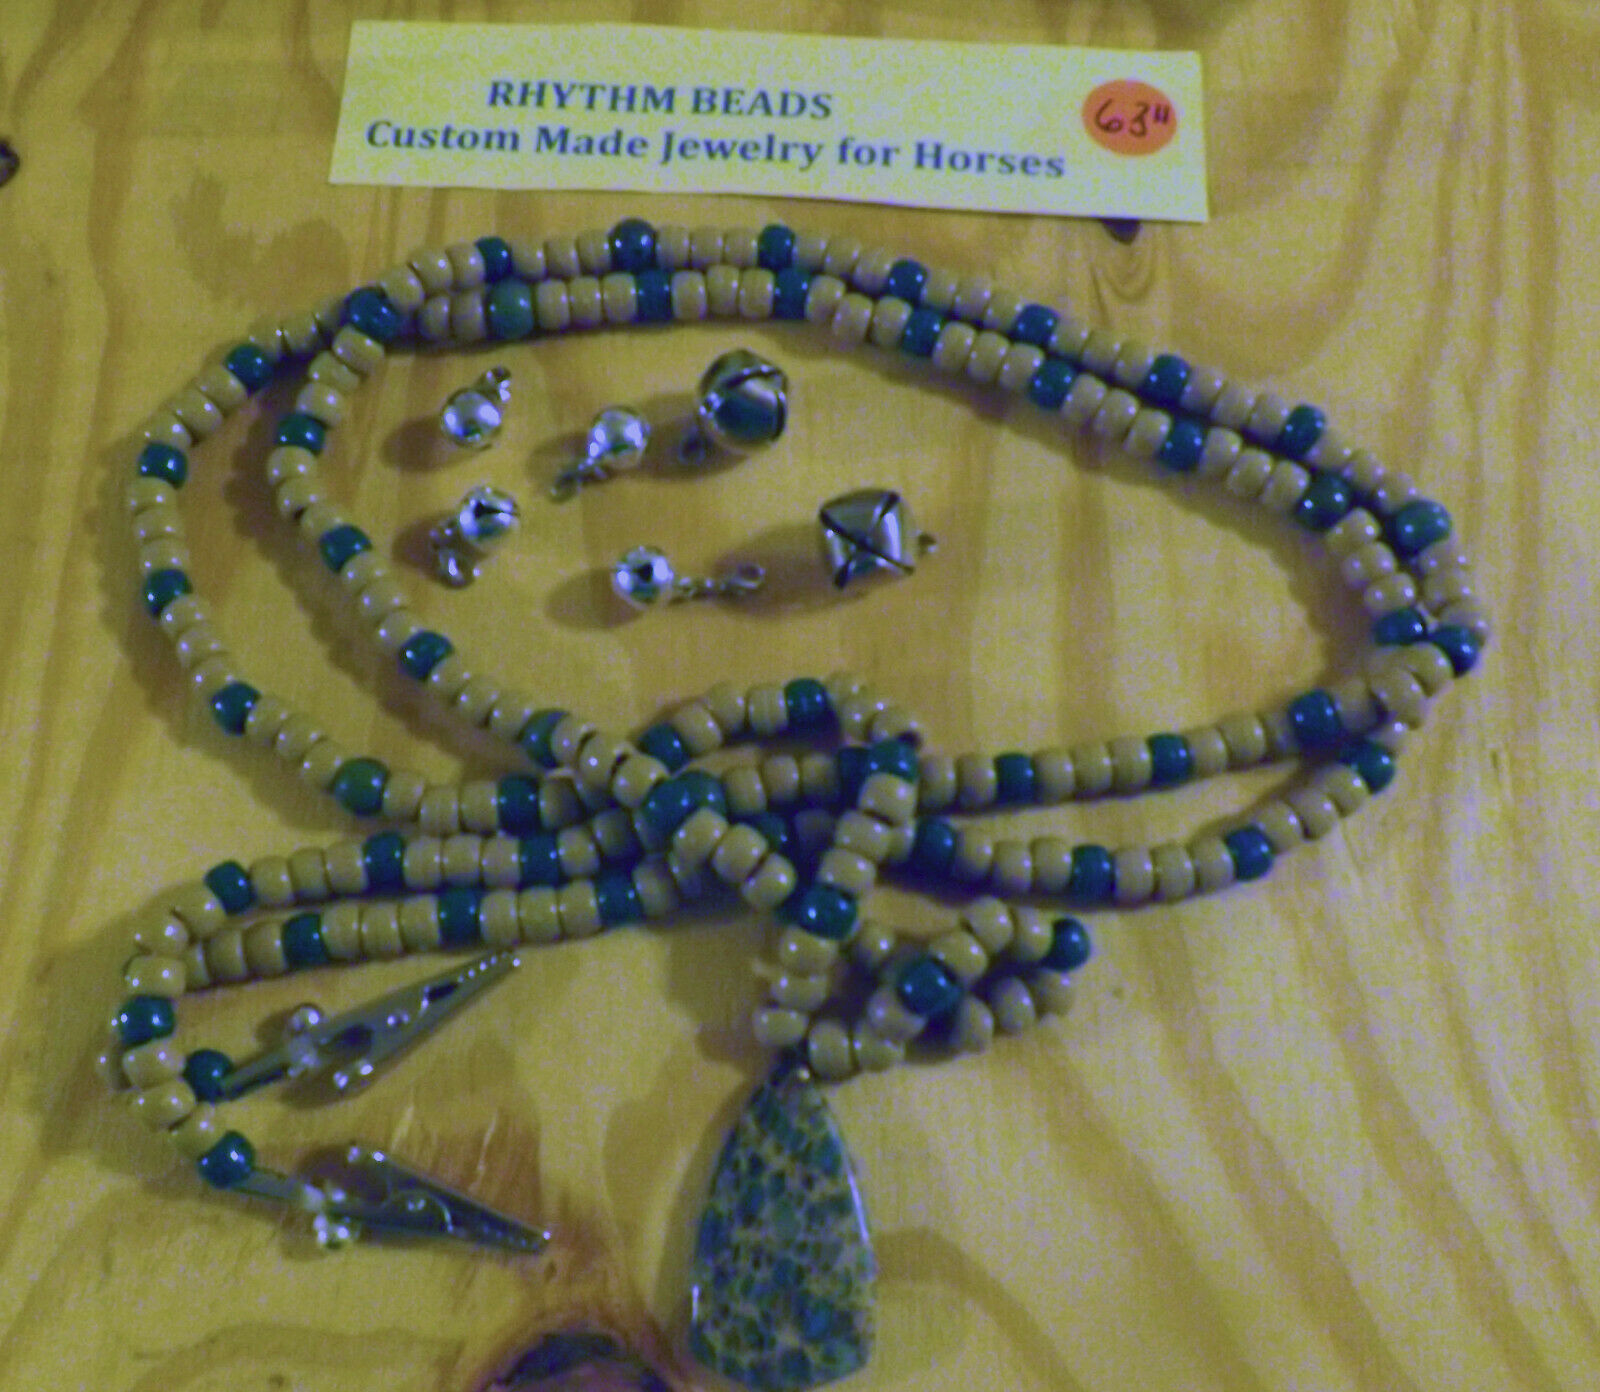 Rhythm Beads For Steeds Jewelry for Horses W Agate  Pendant & Detachable Bells  free delivery and returns